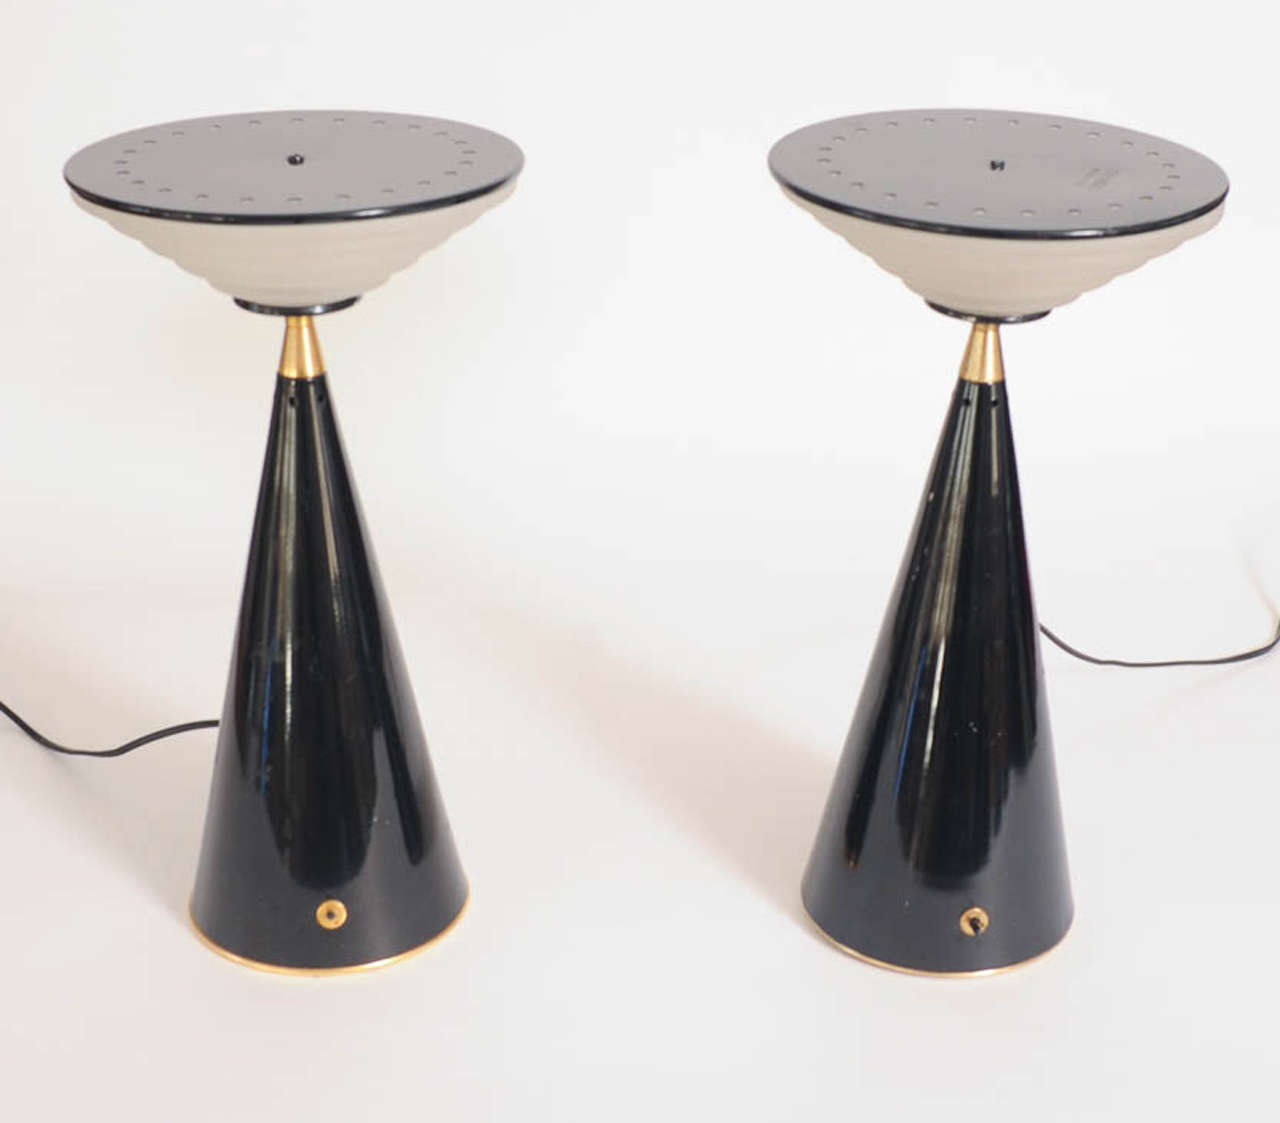 Wonderful and very rare pair of 1980s Ziggurat table lamps by designer Shigeaki Asahara made by Stilnovo.  The base is made of black lacquered metal and has been enhanced by a brass ring on the base and on the top of the trunk.  The shades are made